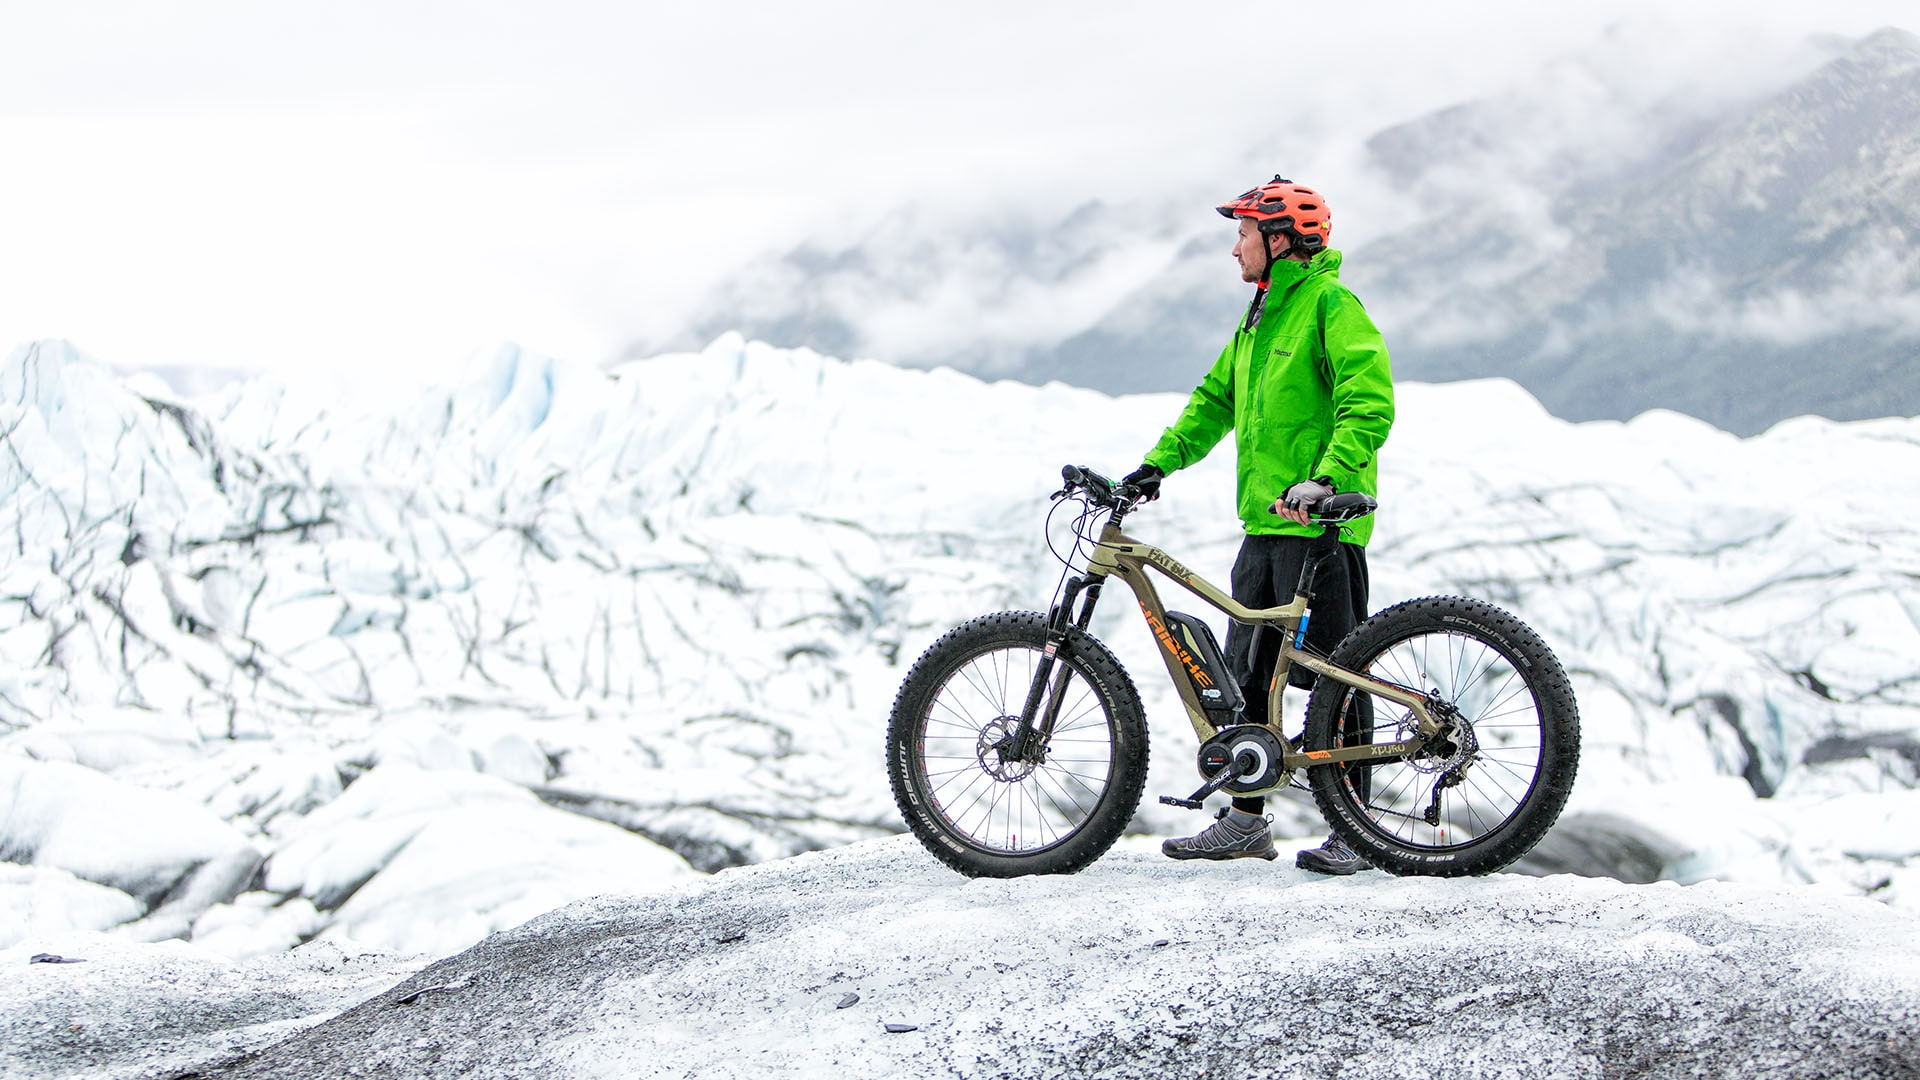 A mountain biker enjoys the view at Matanuska Glacier in Alaska.